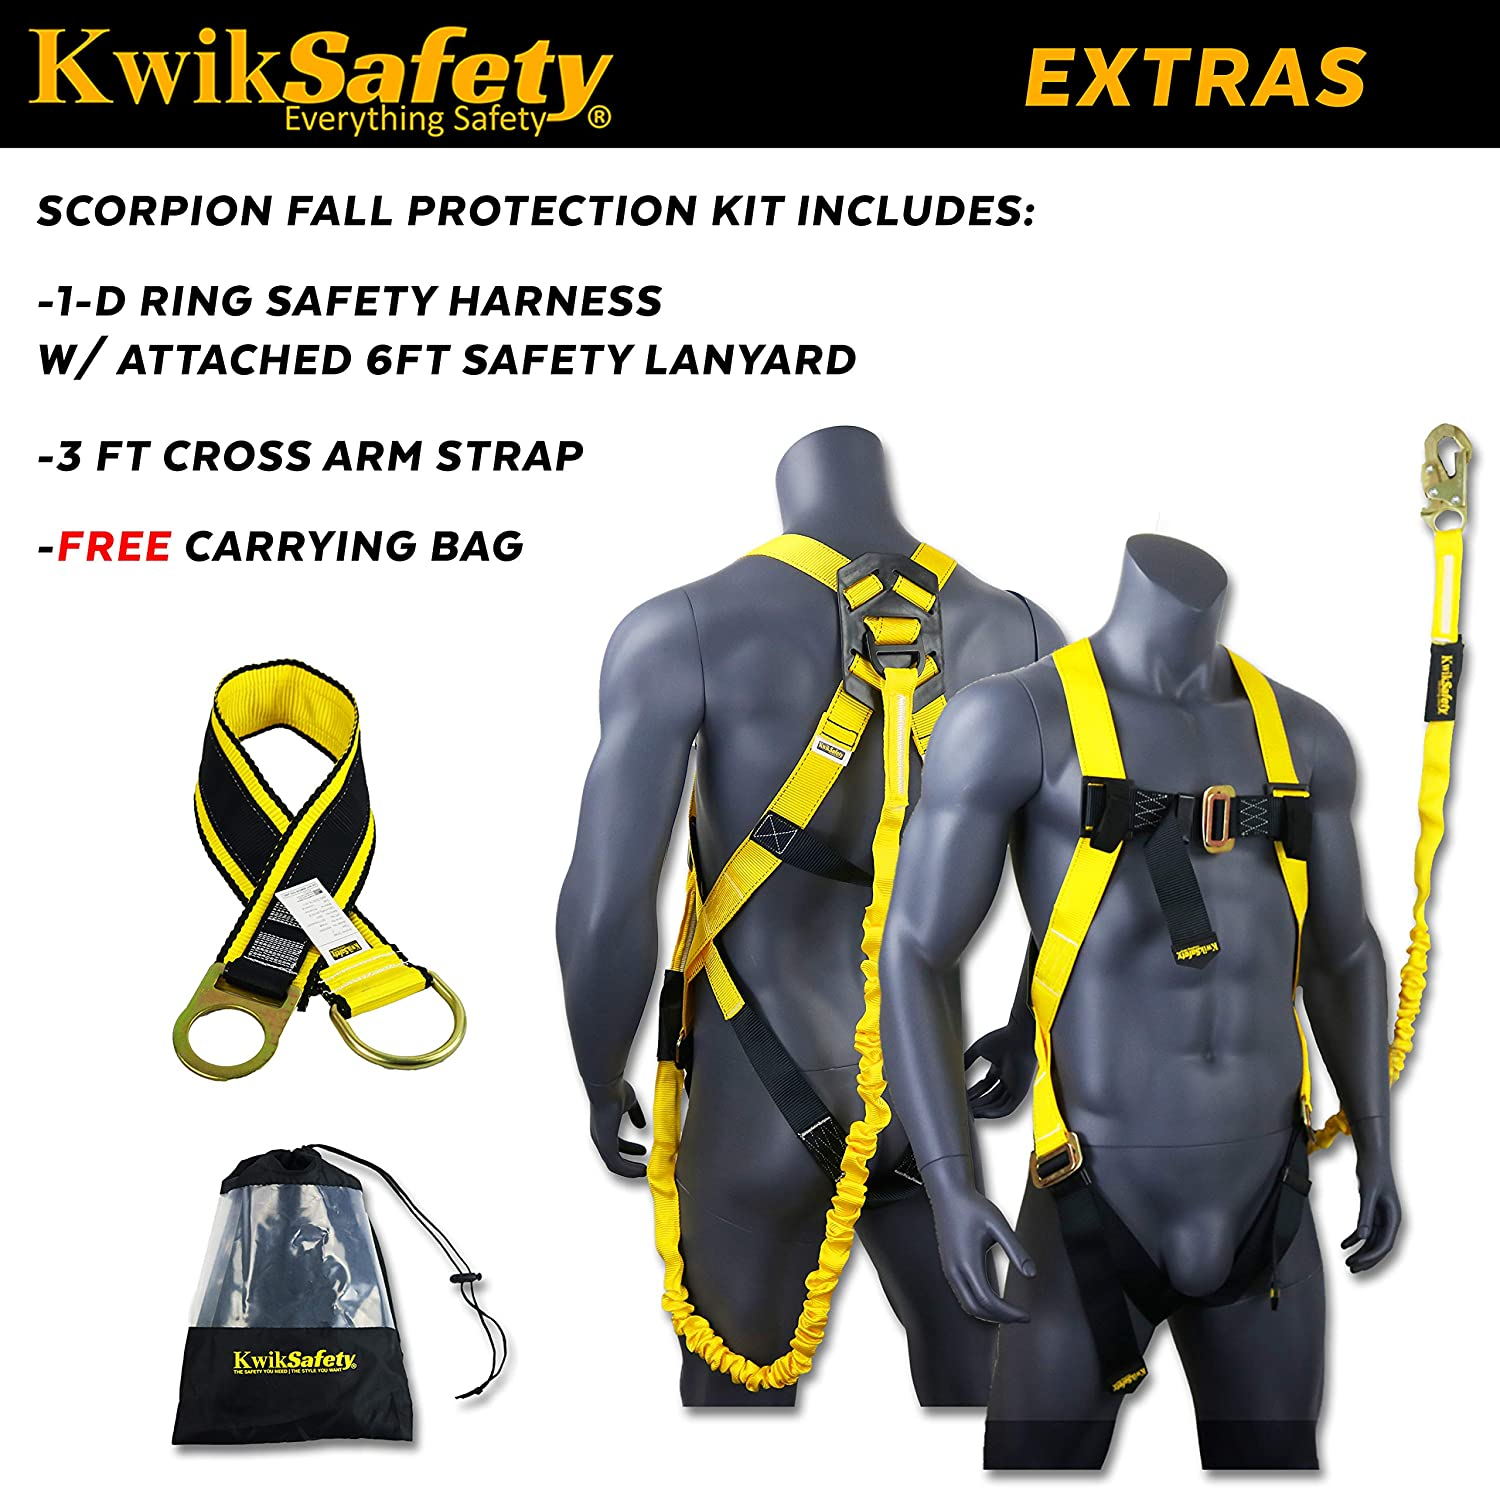 Kwiksafety Scorpion Kit 1d Full Body Safety Harness 6 Lanyard Attached 3 Cross Arm Strap Anchor Ansi Osha Ppe Fall Protection Arrest Restraint